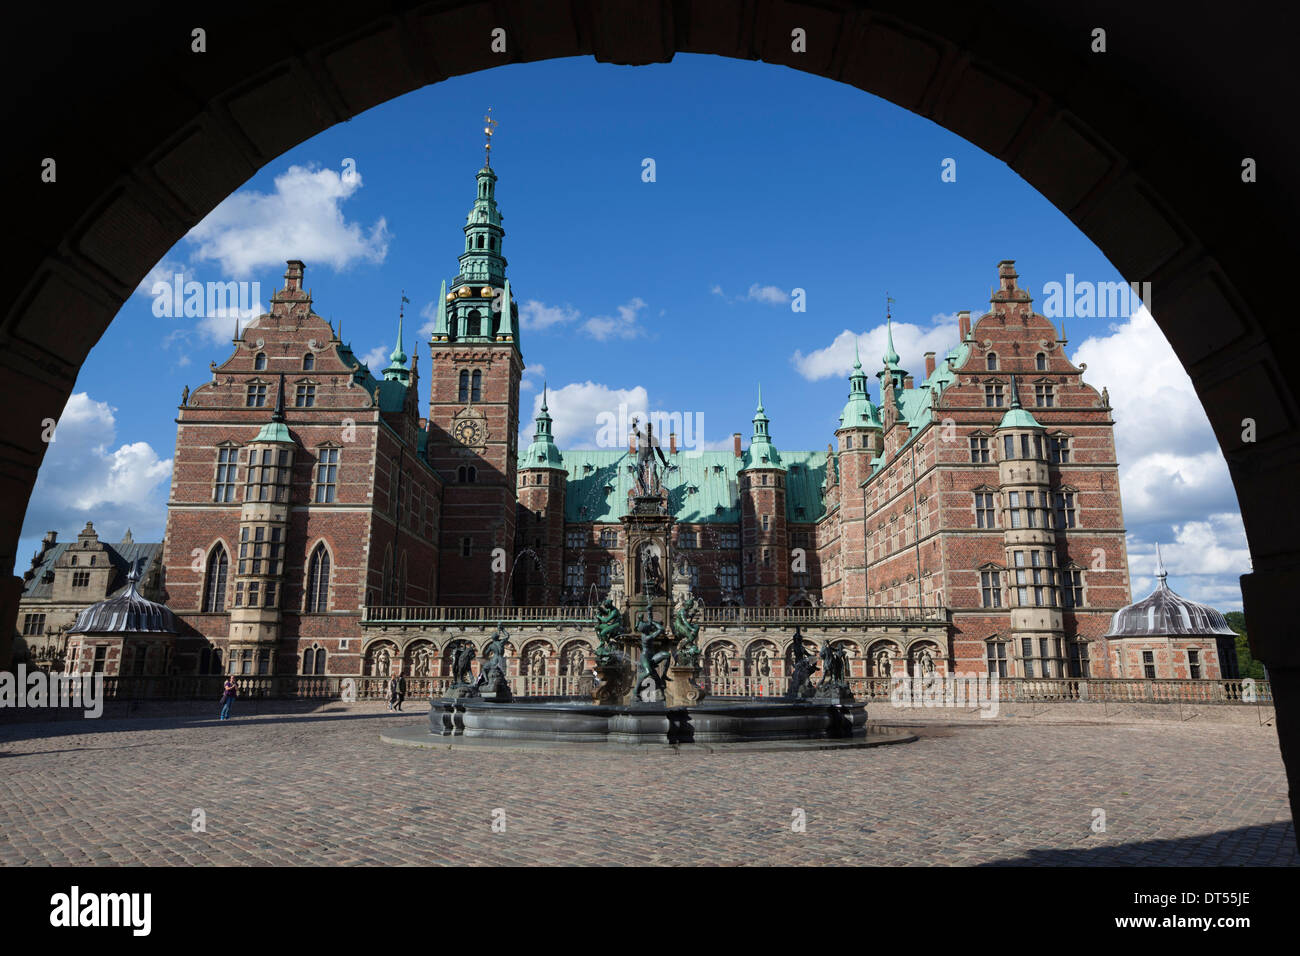 Neptune Fountain and Royal wing of Frederiksborg Palace, built as a royal residence for King Christian 4th - Stock Image